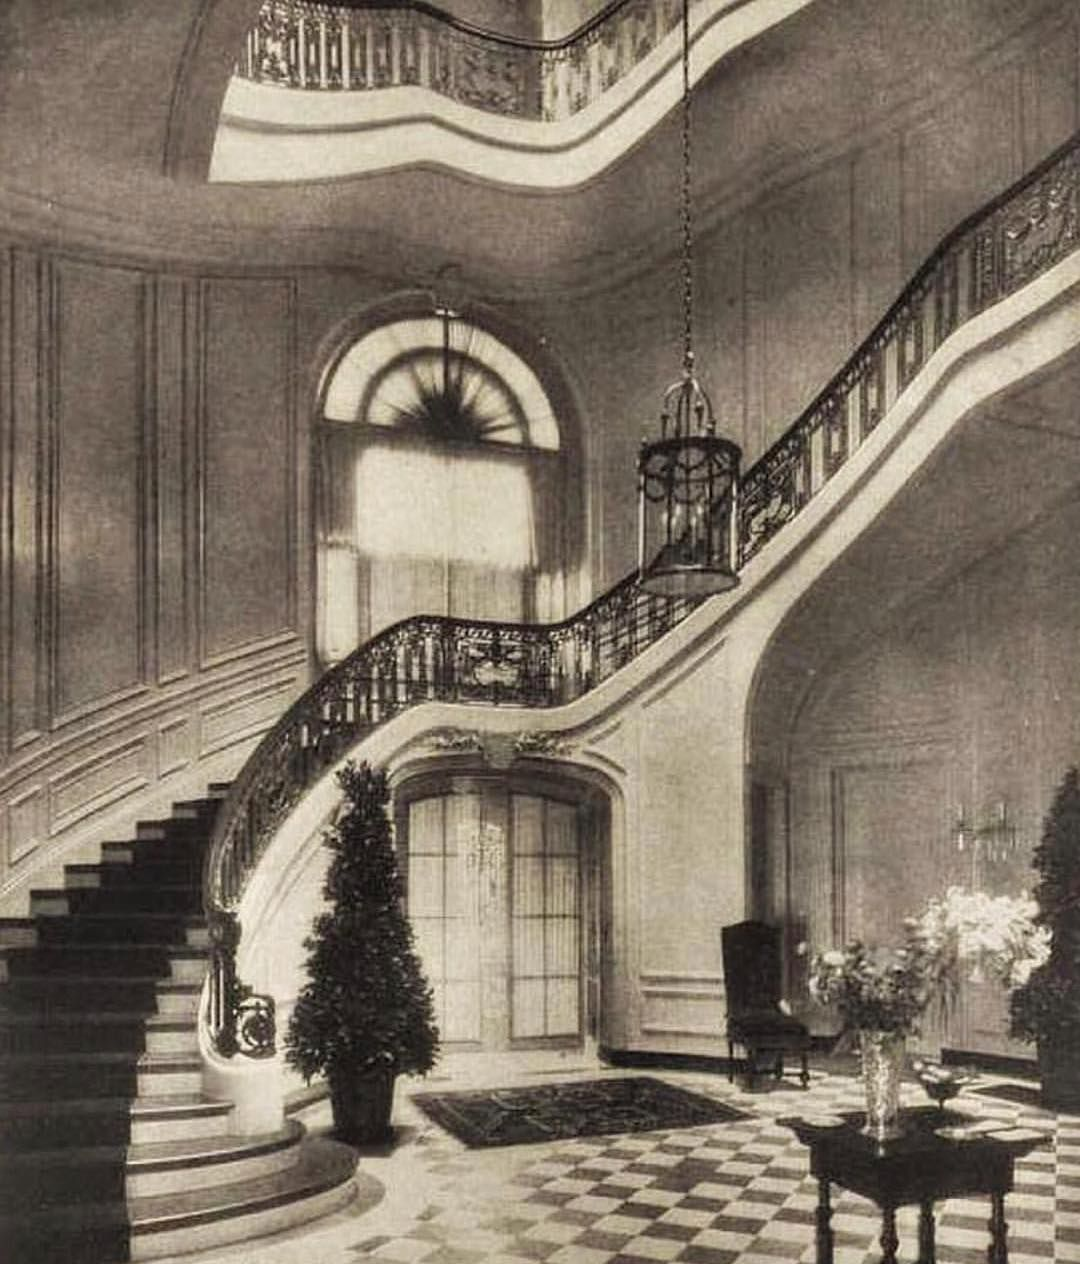 The Grand Staircase Of The Frederick Ayer Mansion At Prides Crossing Massachusetts Sadly The Mansion And Staircase Are No Longer